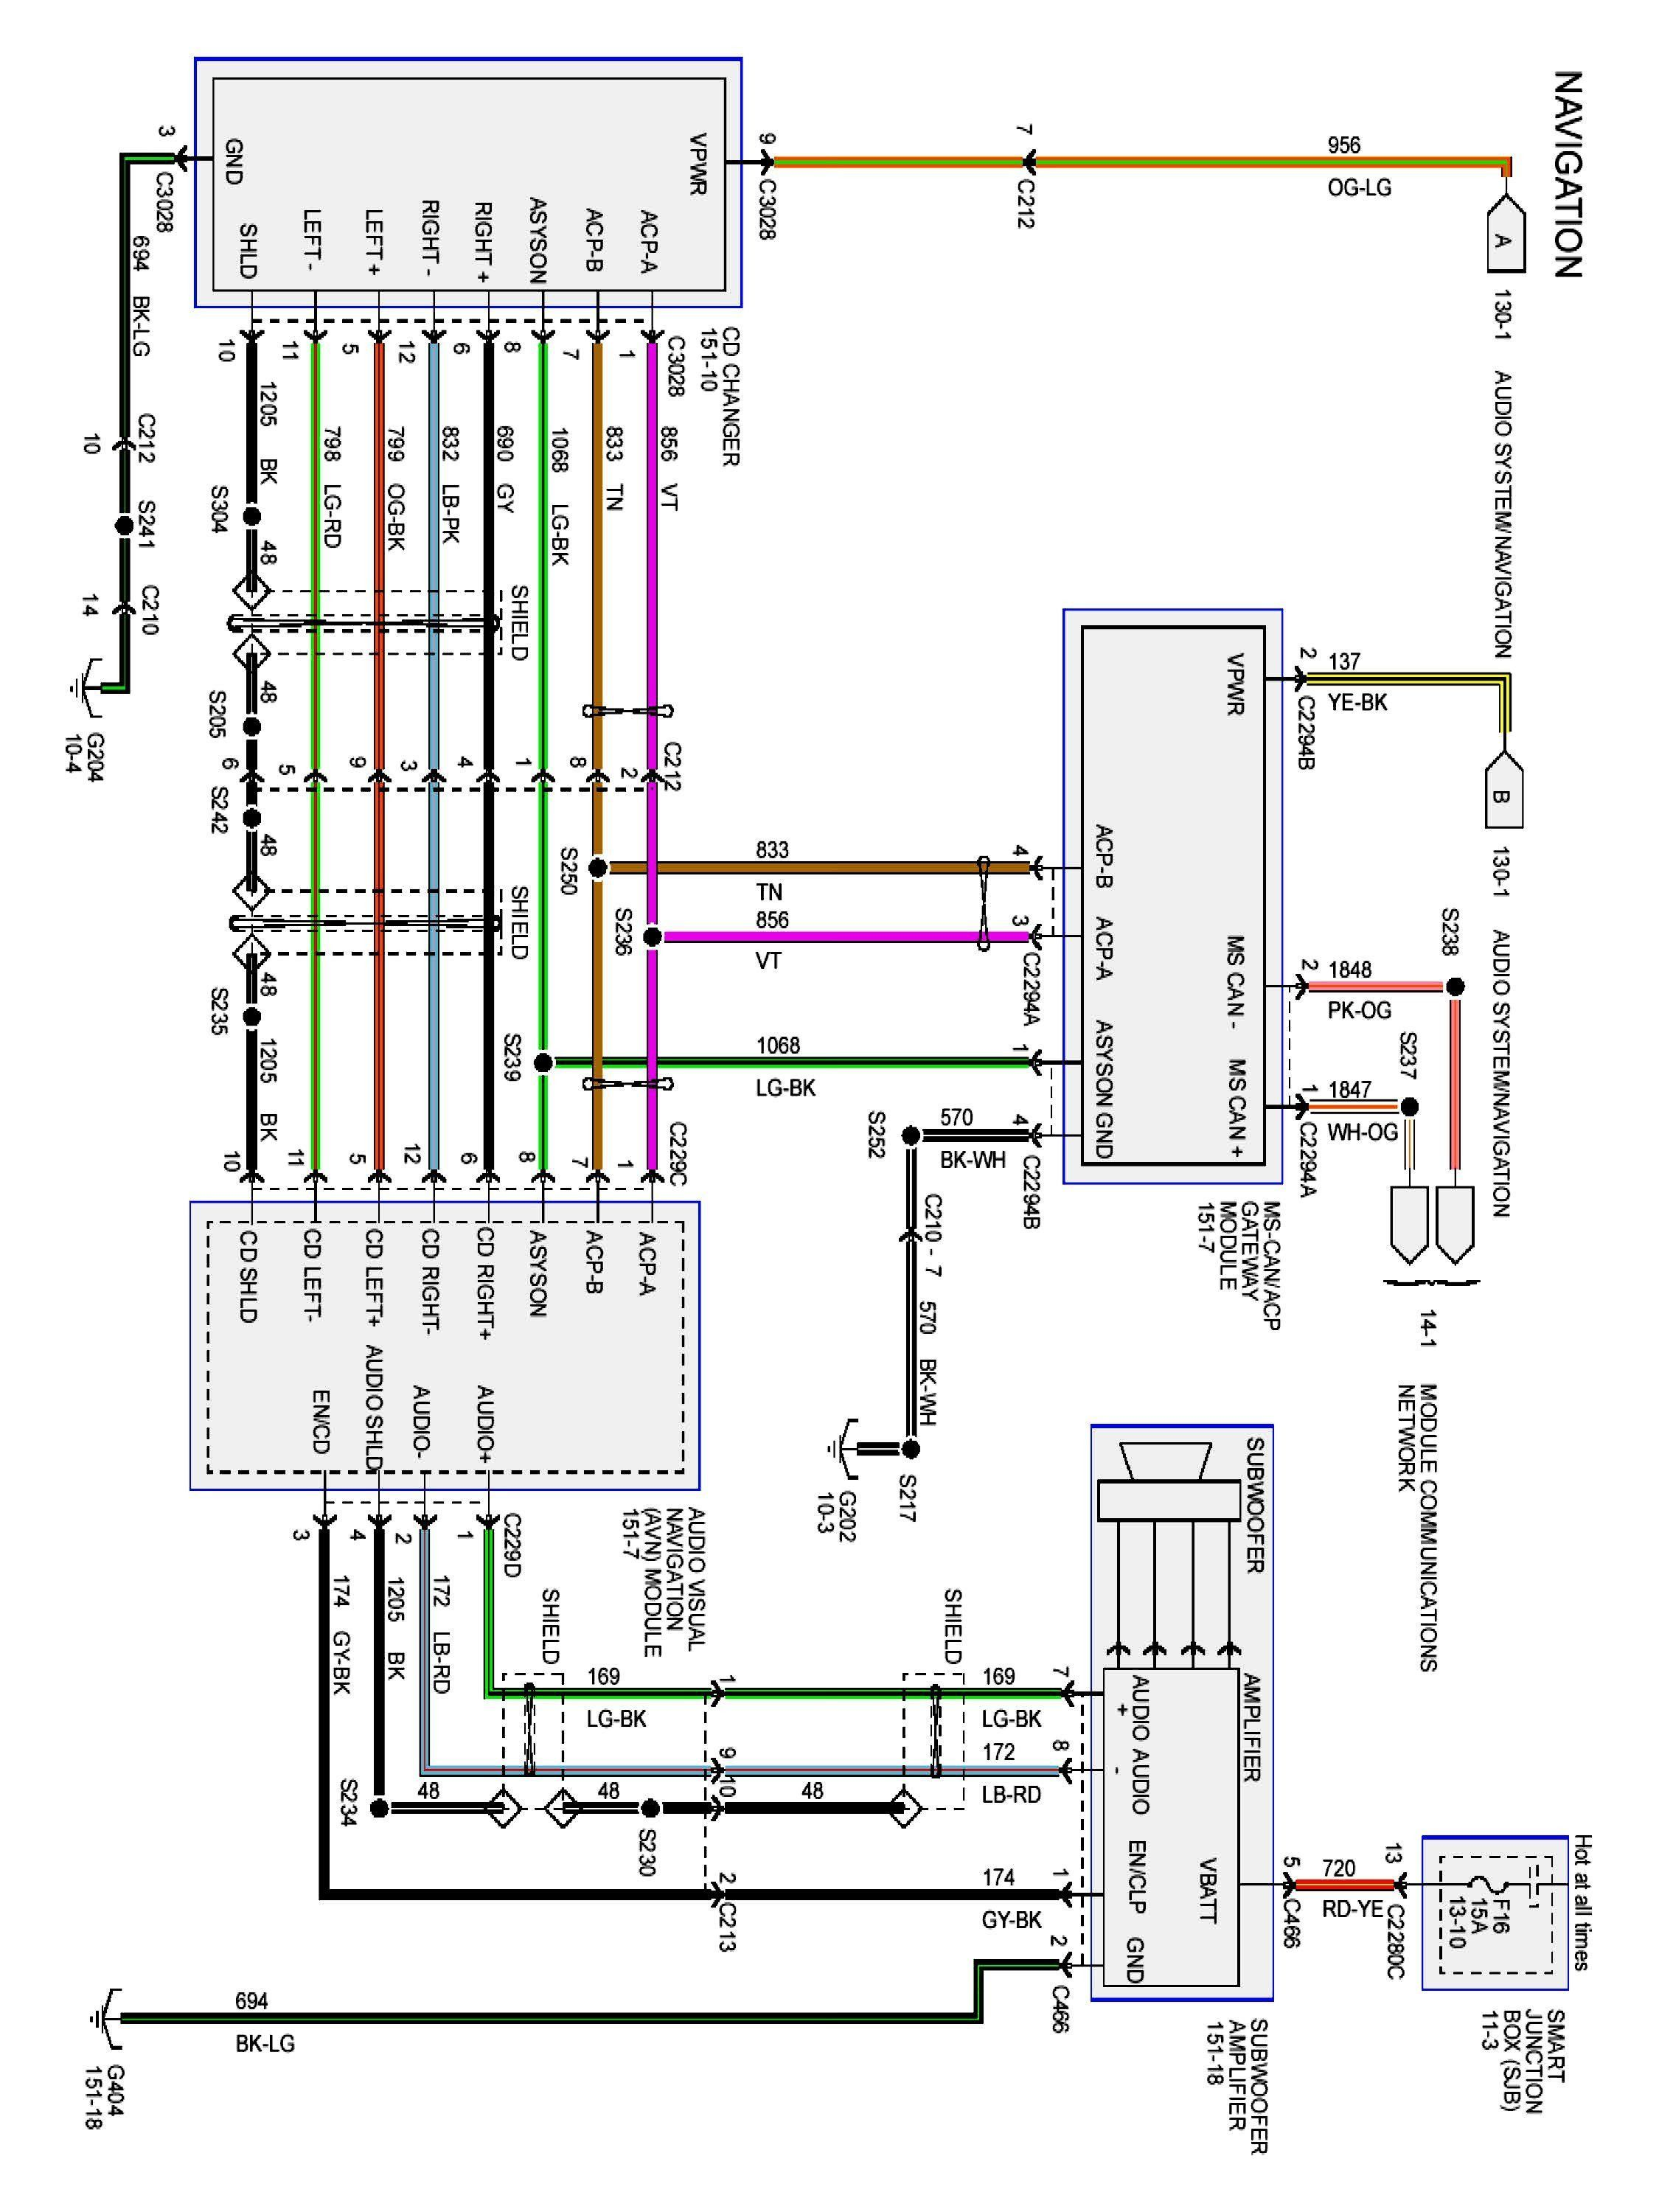 35 Best Of 2010 F150 Radio Wiring Diagram | Ford expedition, Electrical wiring  diagram, Trailer wiring diagramPinterest